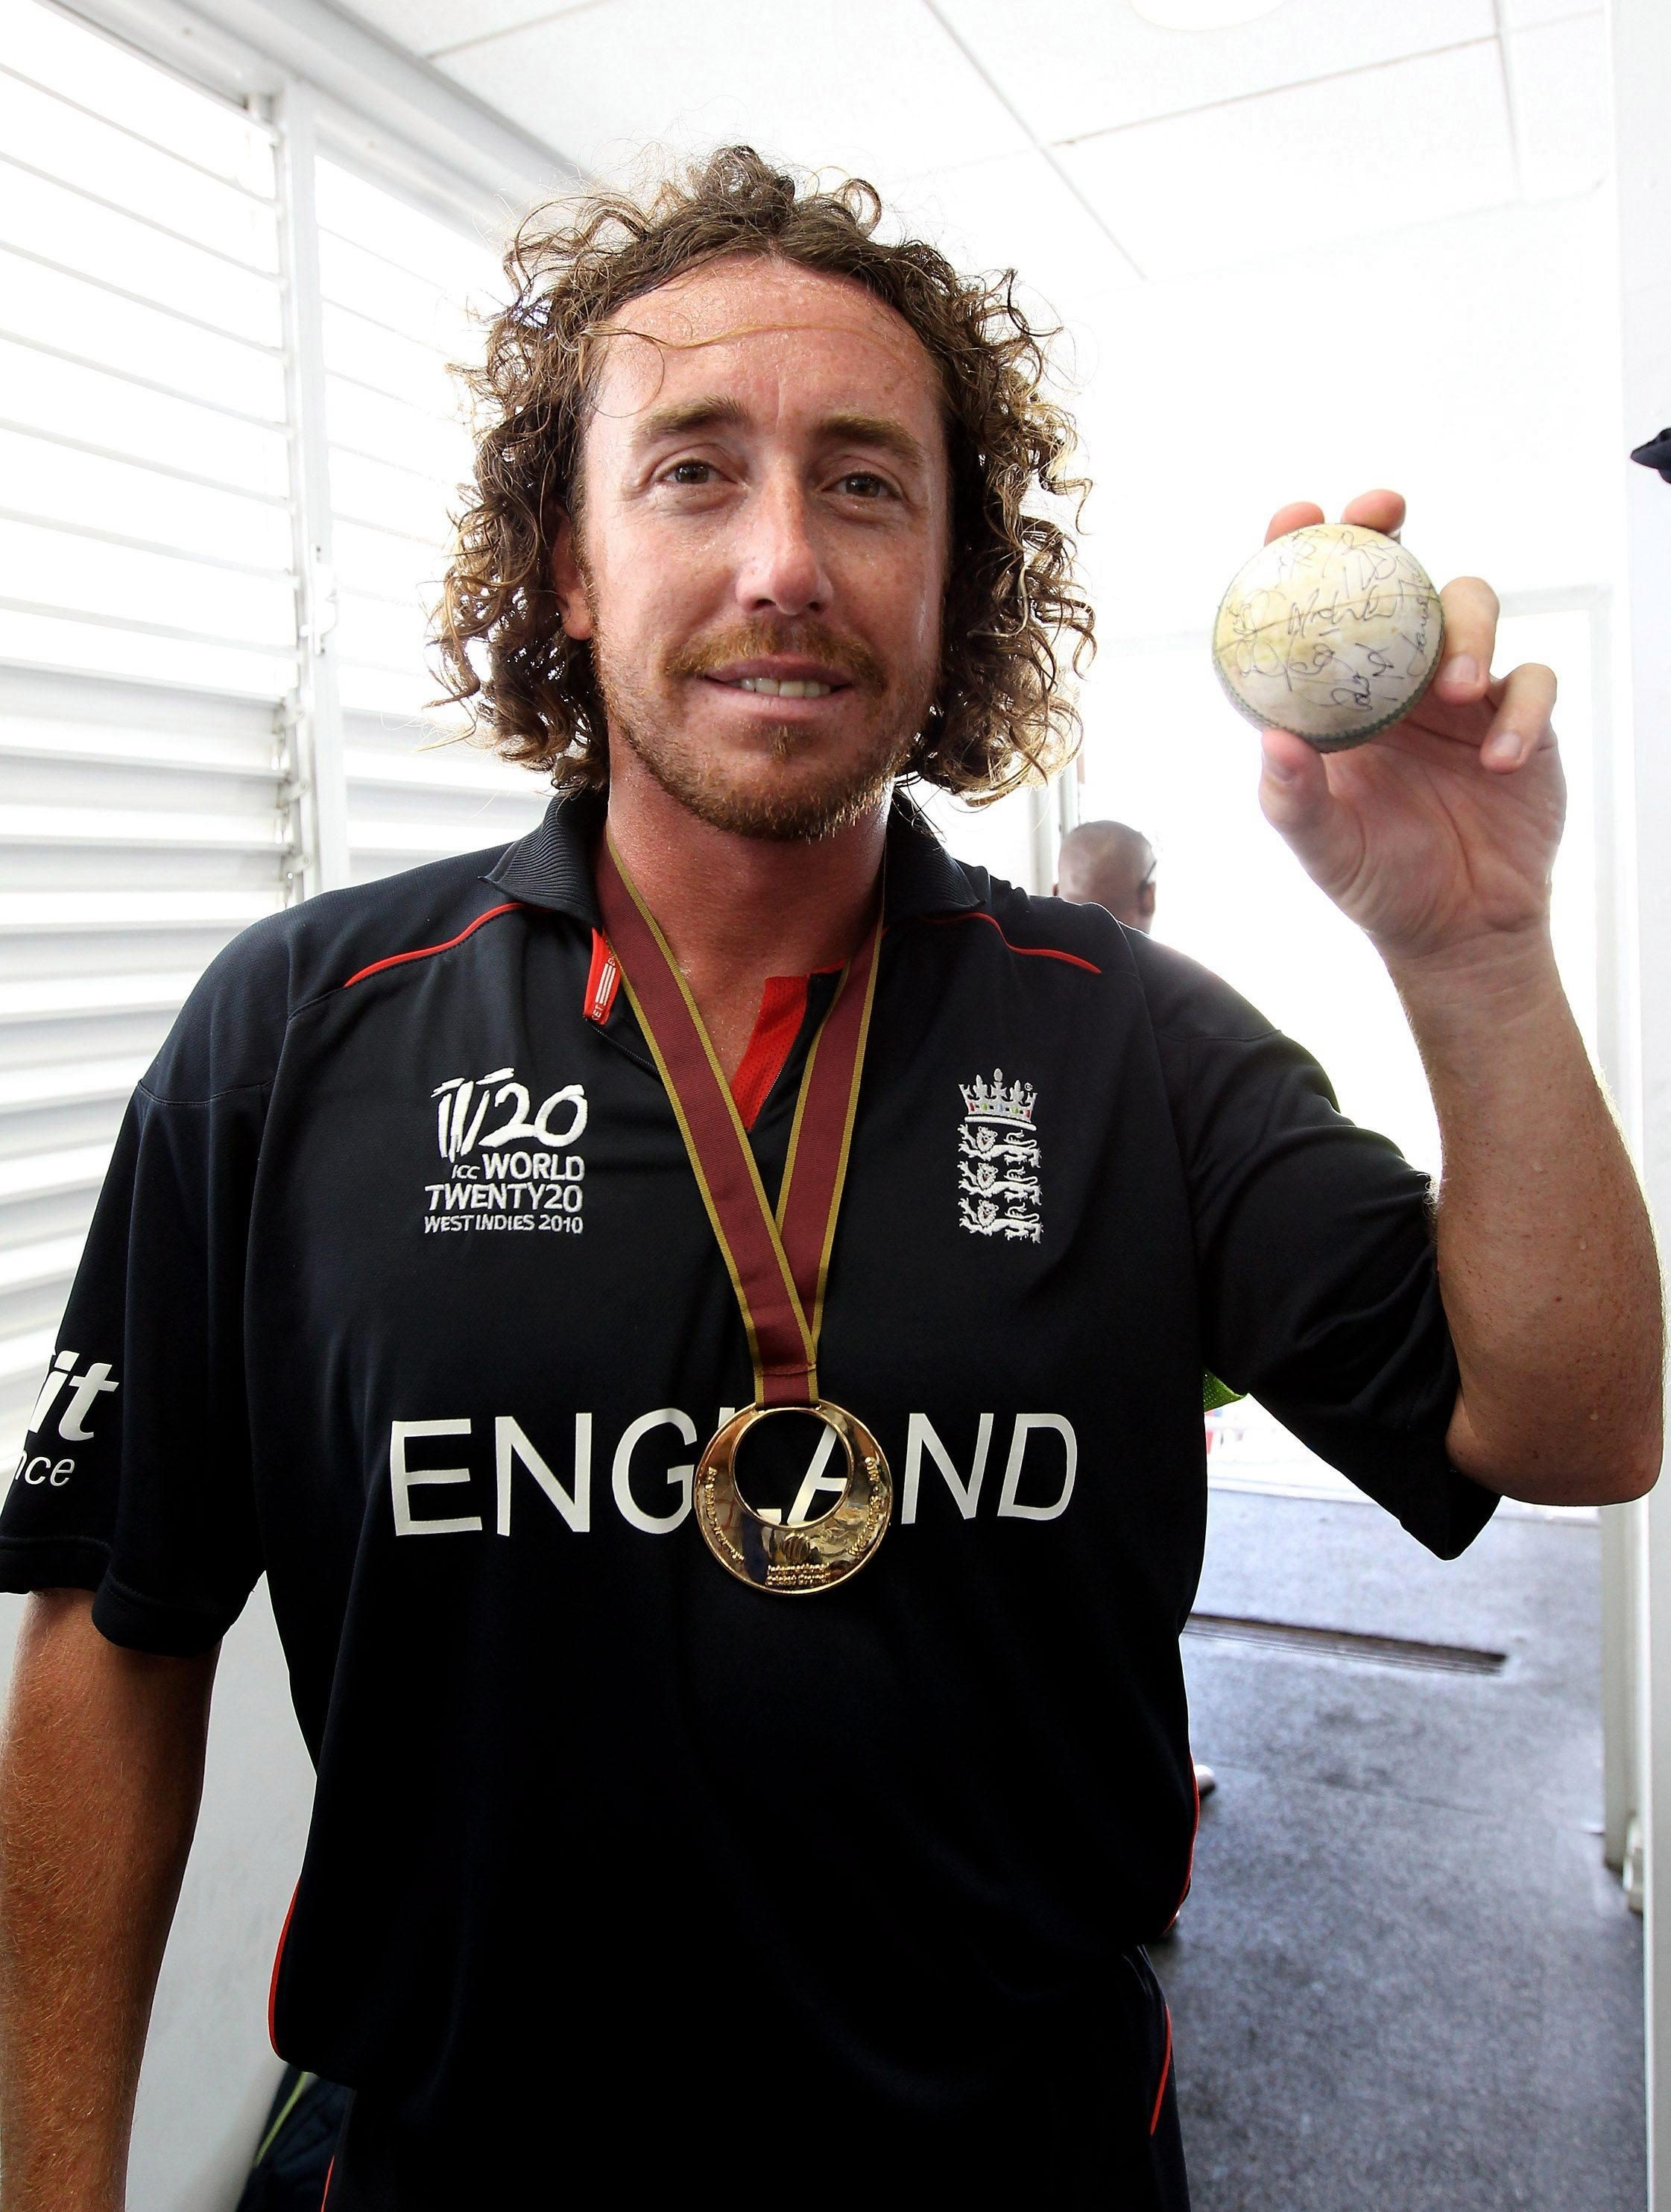 Bowler Sidebottom won a T20 World Cup title with England